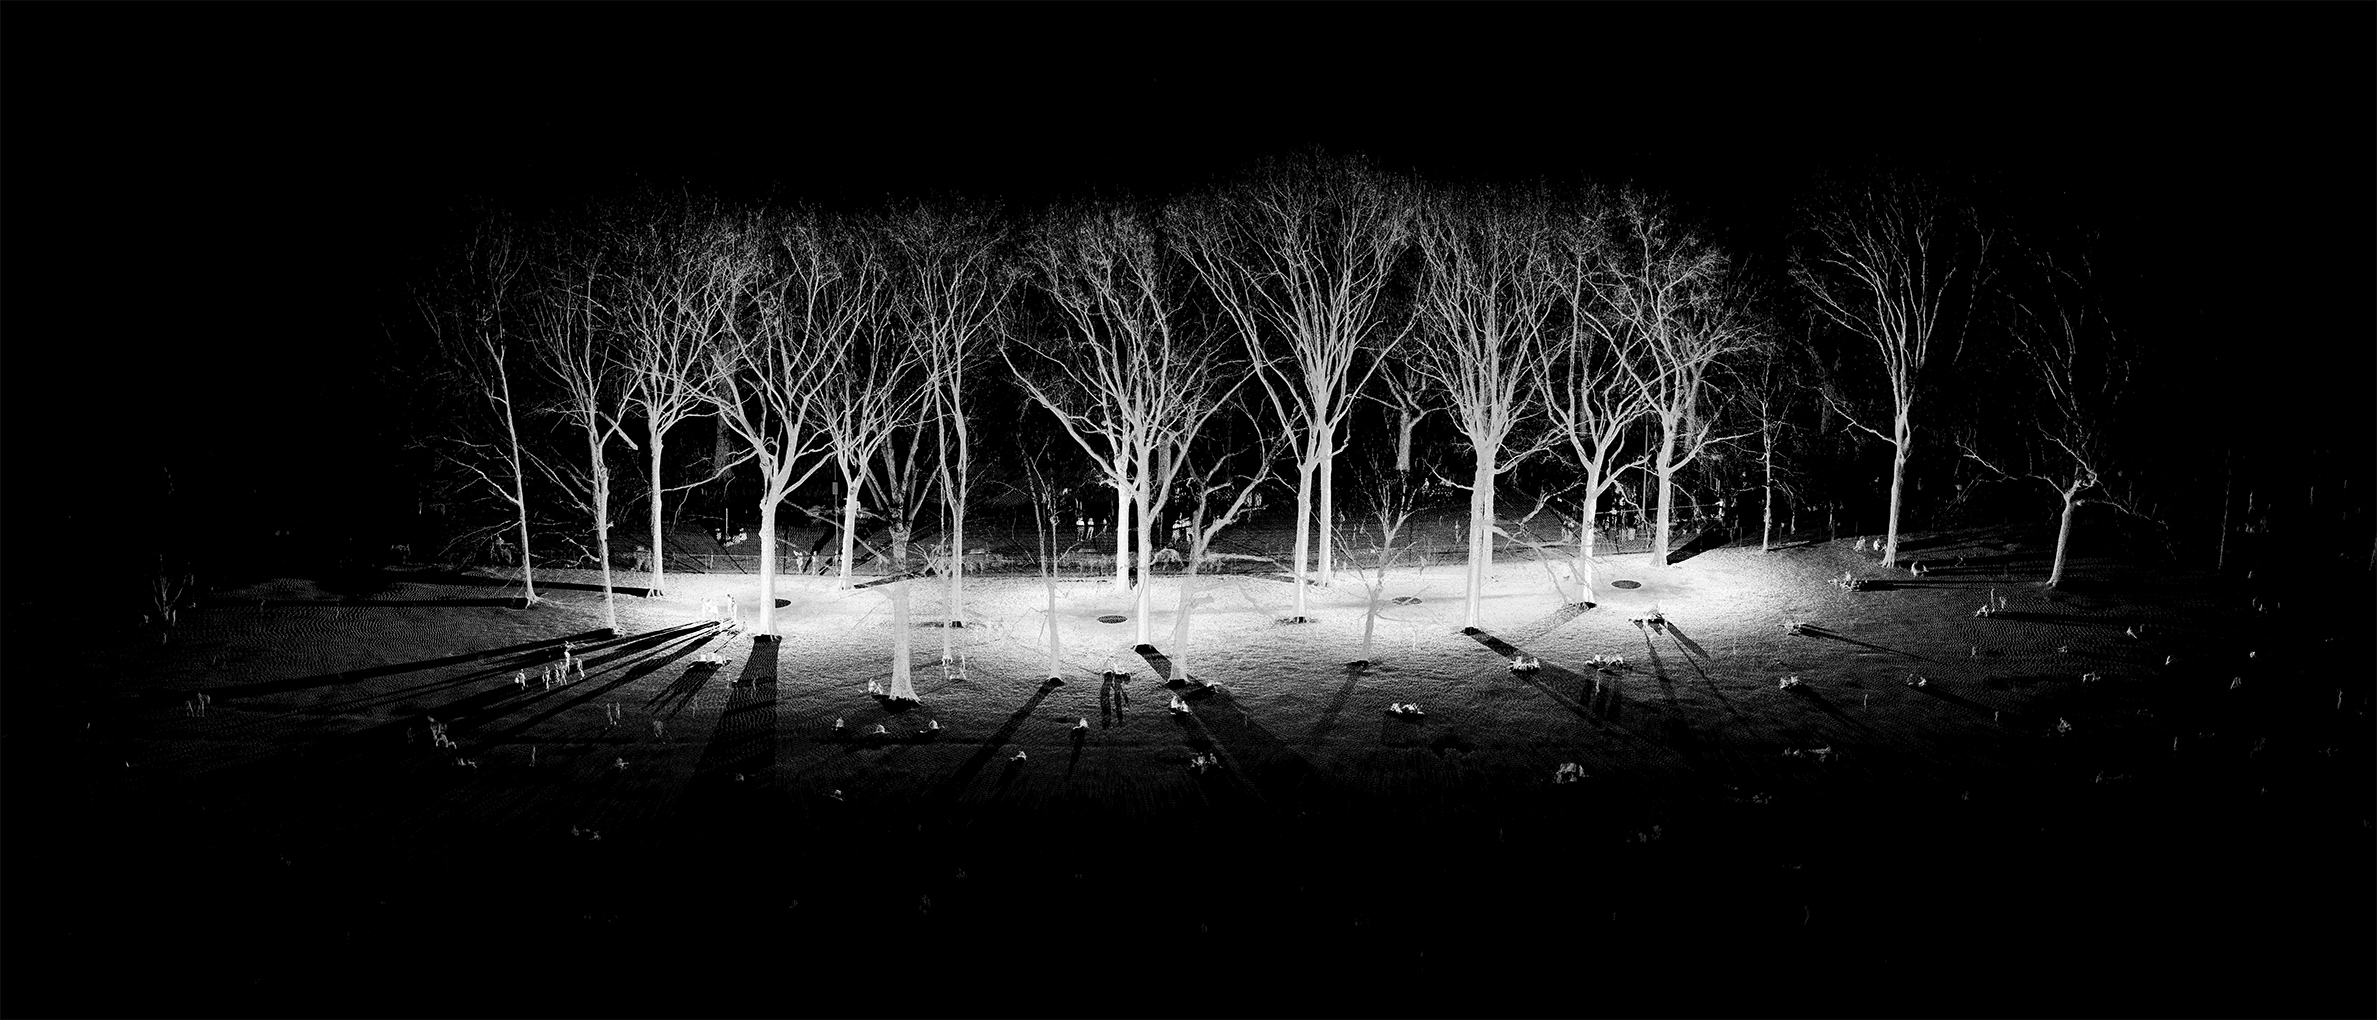 mynd-workshop-central-park-sheep-meadow-trees-8-1-3D-laser-scanning-point-cloud-new-york.jpg